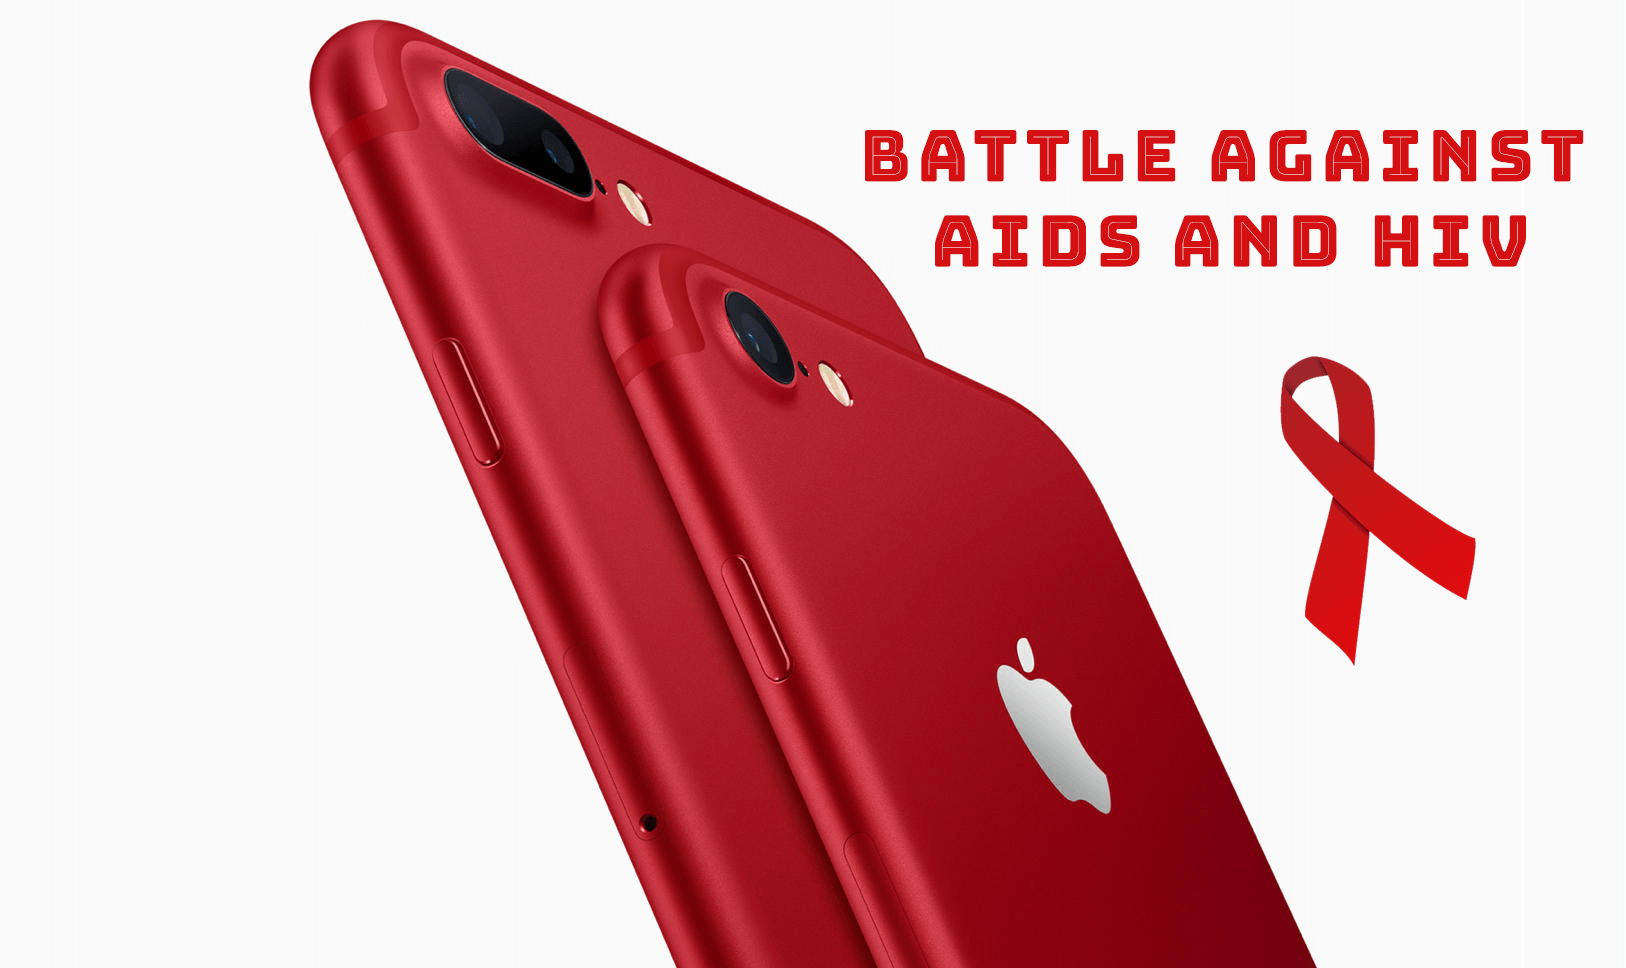 Red iPhone 7 and iPhone 7 plus AIDS and HIV - unbox cell